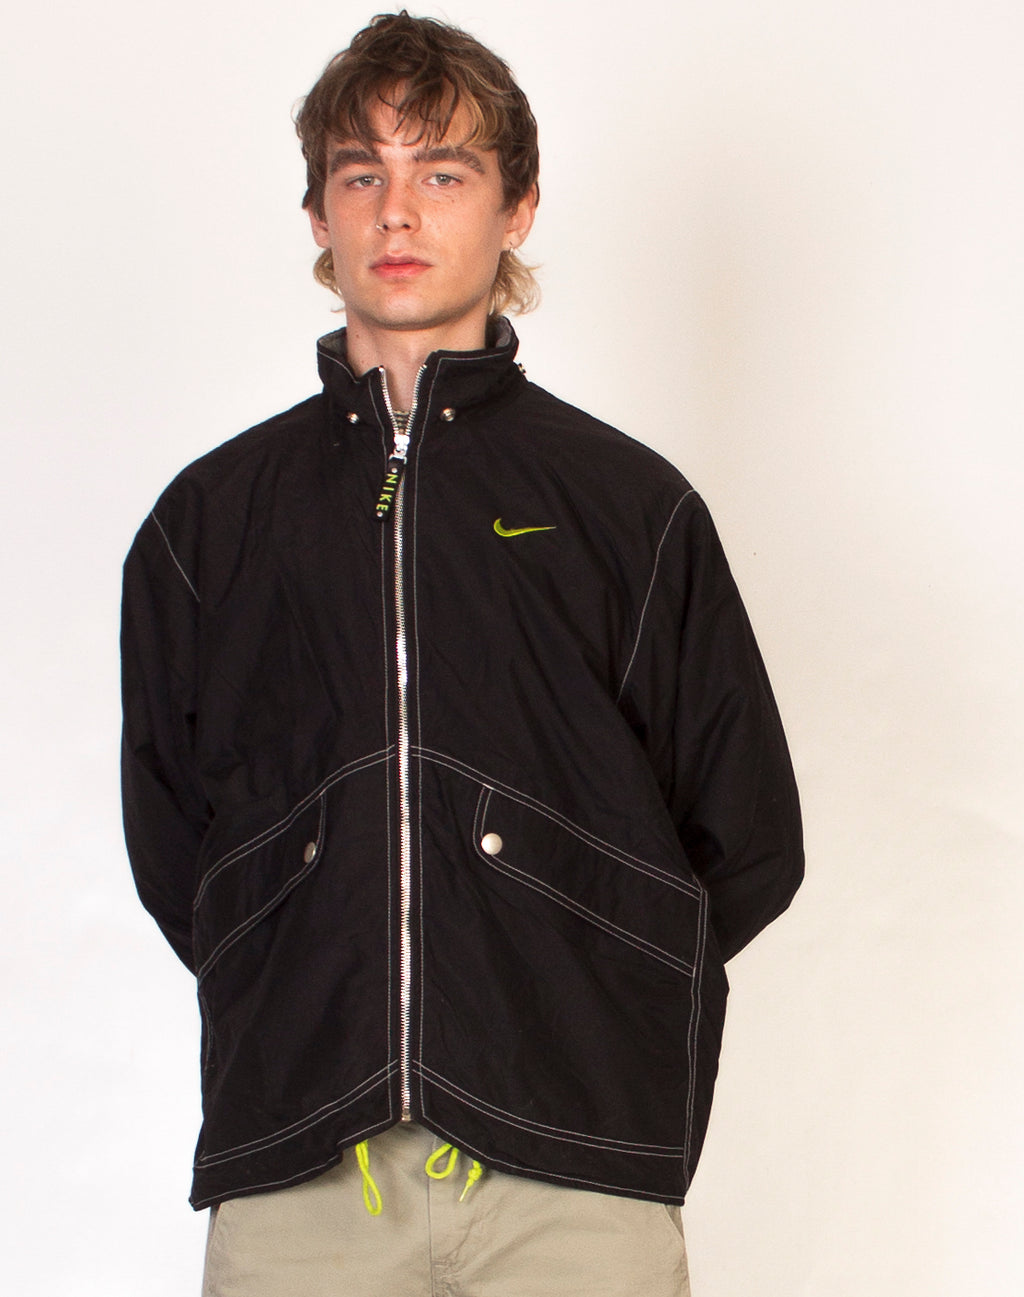 NIKE BLACK AND LIME TRACK JACKET